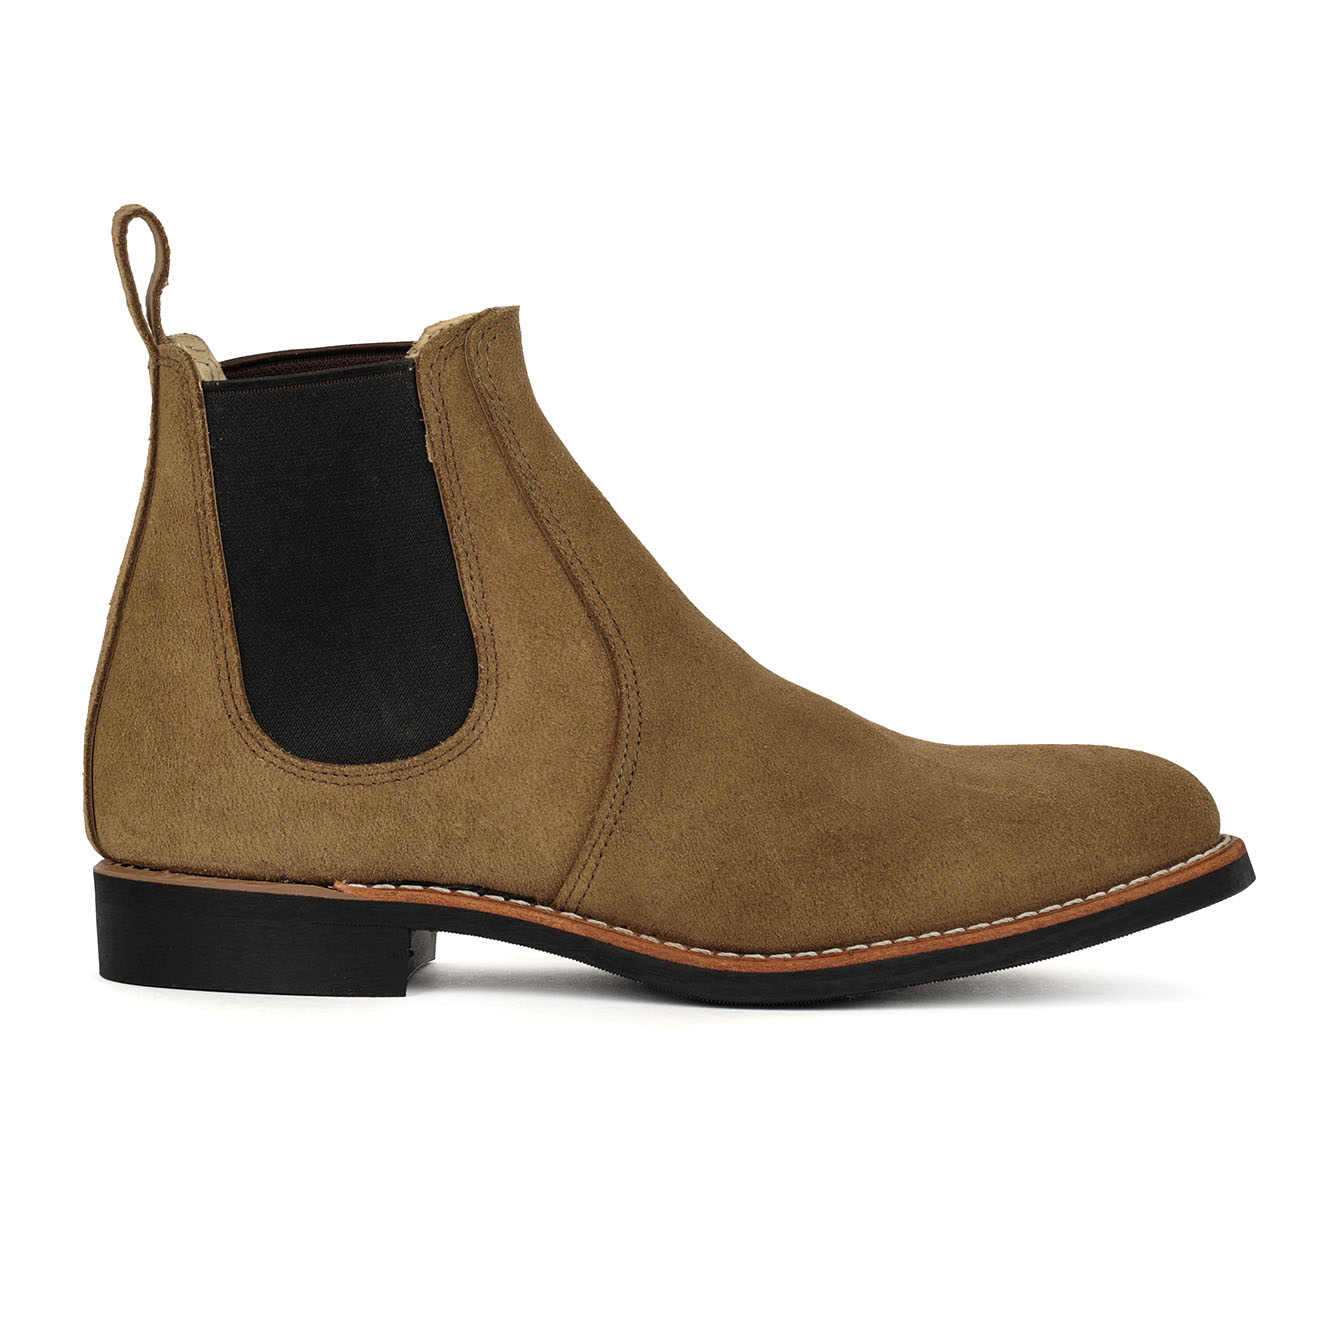 202bd439a34c2 Red Wing Womens 6-inch Chelsea Boot Olive Mohave Leather - The ...